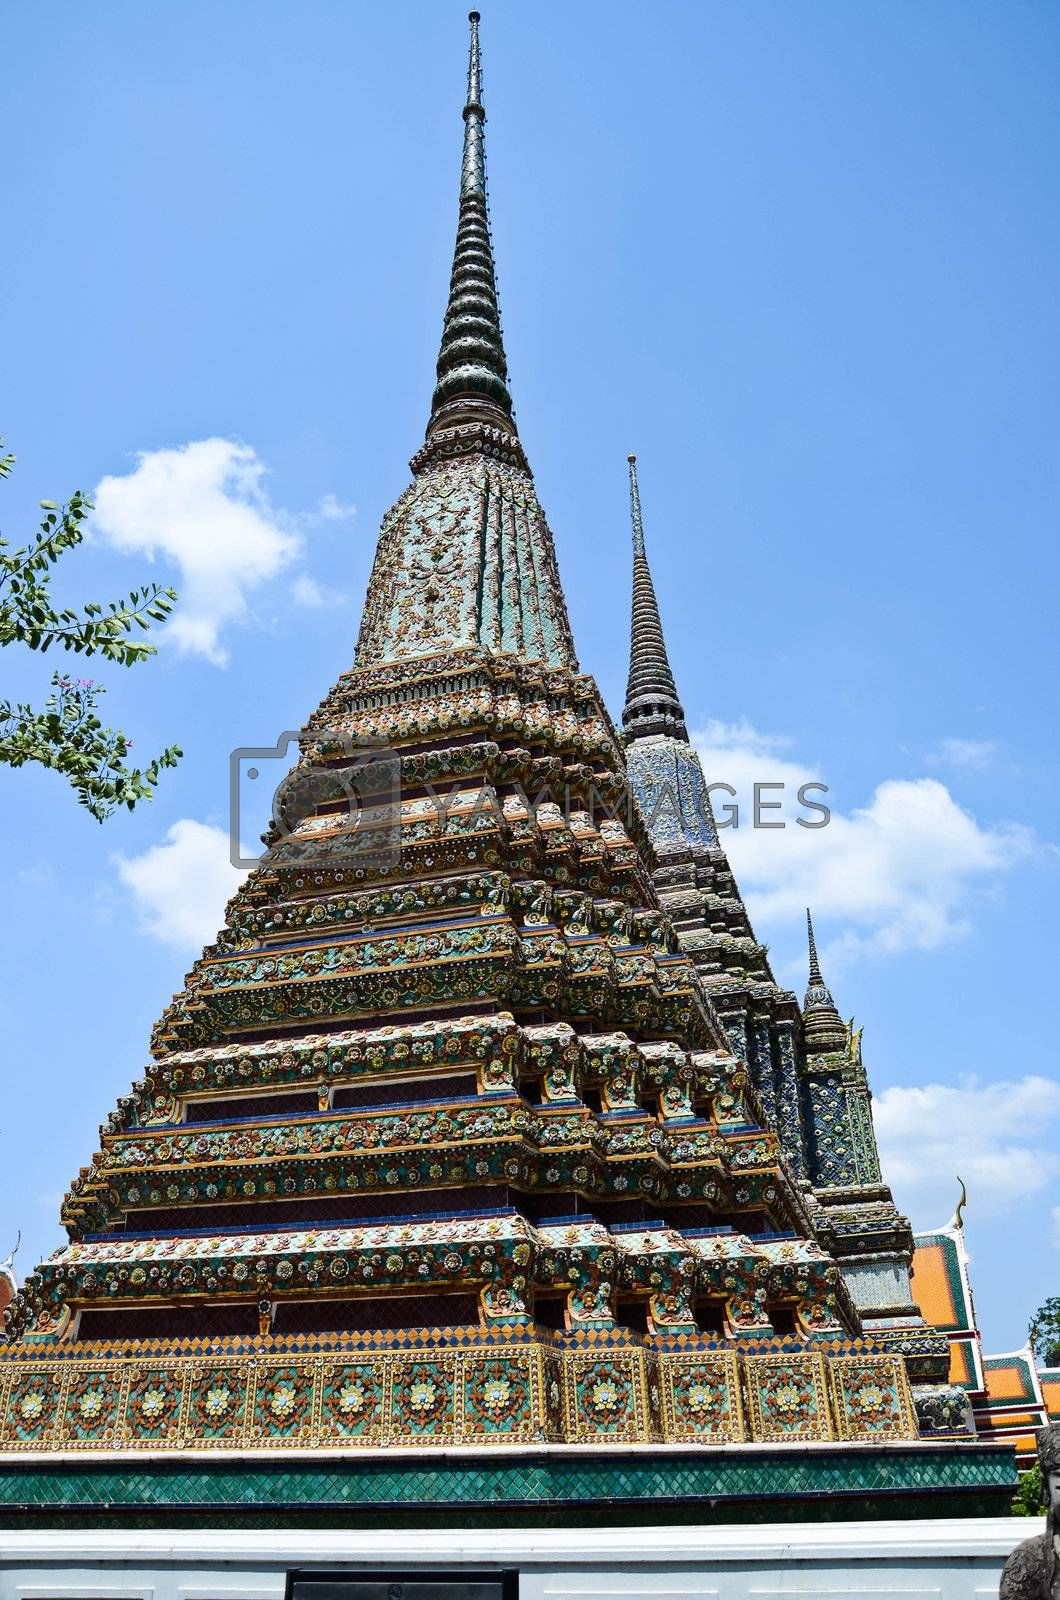 Ancient Pagoda or Chedi at Wat Pho, Thailand.